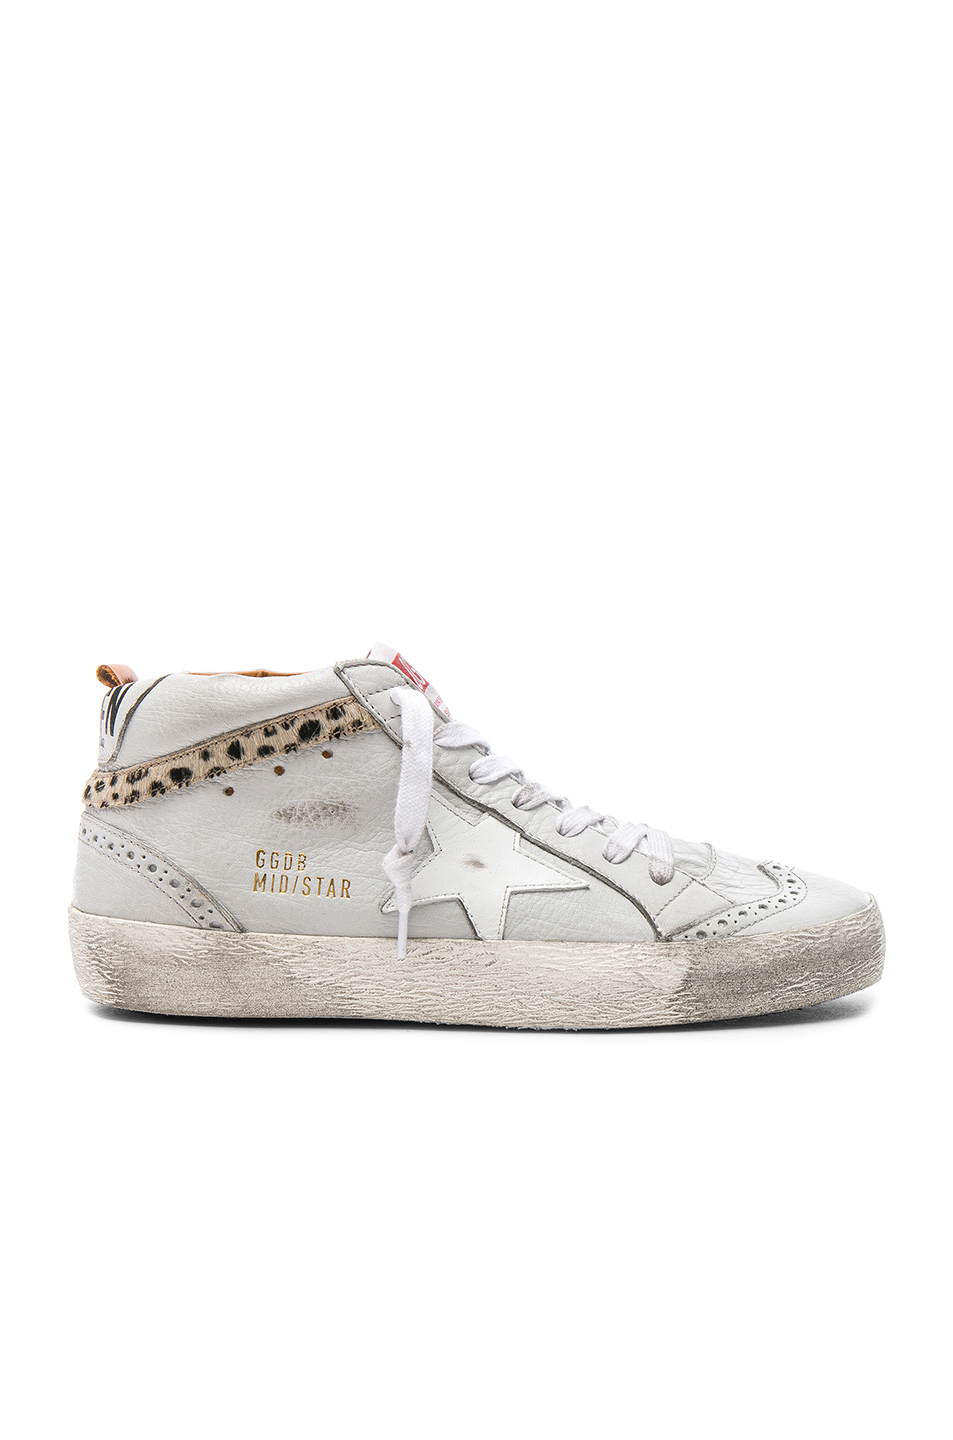 Golden Goose Leather Mid Star Sneakers With Cow Hair in Gray,Animal Print